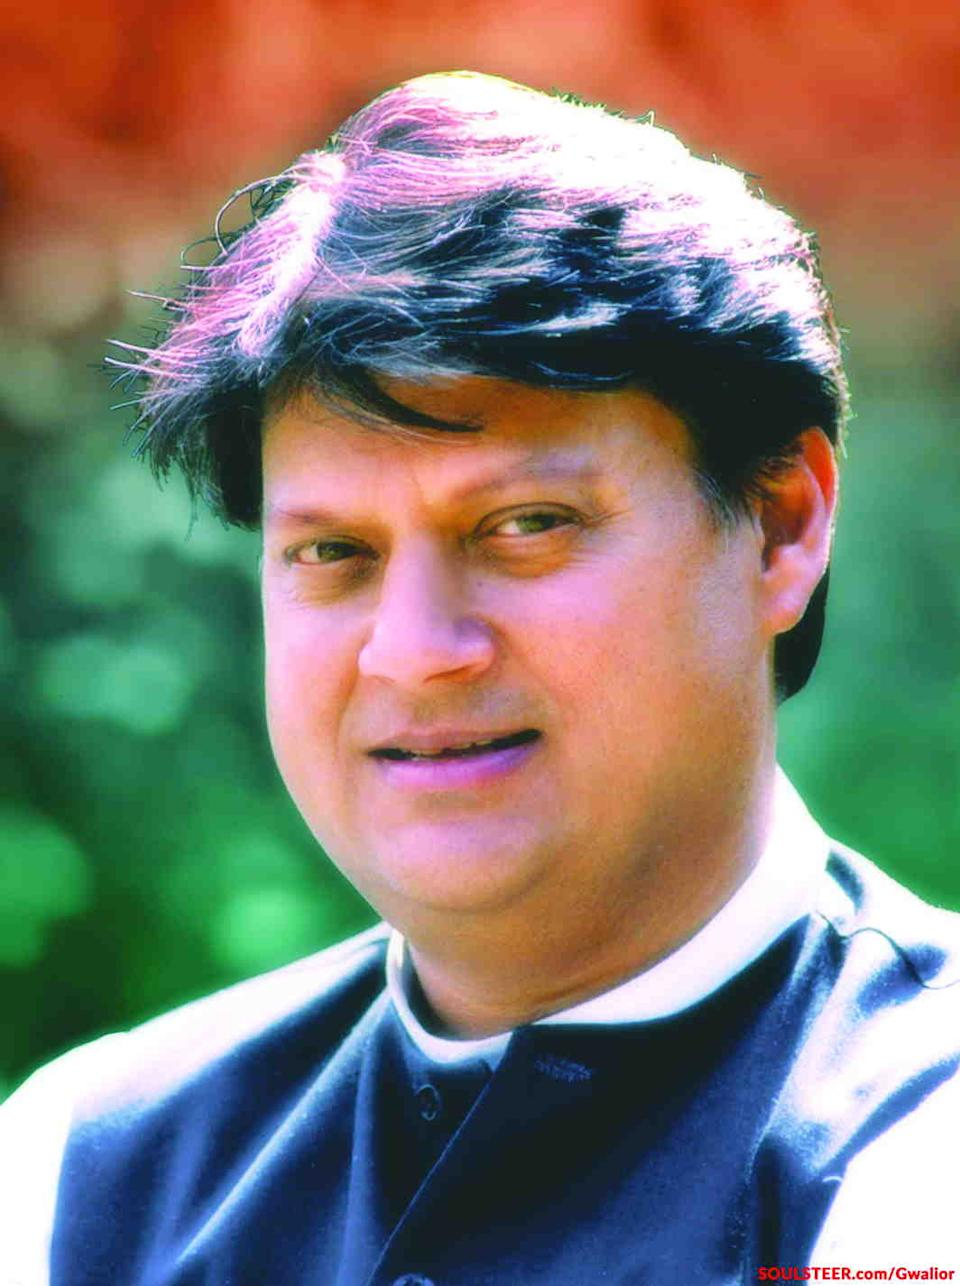 Jyotiraditya Scindia's father, the late Madhavrao Scindia started his political innings as an MP of the Jana Sangh from Guna in 1971, at the age of 26. During the emergency in 1975, he reportedly went to England as he did not want to be imprisoned. Scindia subsequently resigned from the Jana Sangh and returned to India. After winning elections in 1977 as an independent, Scindia moved to Congress in 1980, despite resistance from his family, and won from Guna for the third time. He continued to stand for elections from either Guna or Gwalior, winning each time, hence, widening the ideological differences between him and his mother, Vijay Raje Scindia. However, in 1996, Scindia rebelled against the Congress, after Arjun Singh the then Chief Minister of Madhya Pradesh who was forced to resign due to charges that a lottery scheme his son ran violated the law, compelled Rajiv Gandhi to not take him as the CM. He left the party and formed the Madhya Pardesh Vikas Congress. It became a part of the 13-party United Front Government that formed two governments in 1996 and 1998, defeating Congress candidates in the elections. Scindia returned to Congress in 1998, where he remained and worked as a close confidante of Sonia Gandhi until his untimely death in an air crash in 2001.